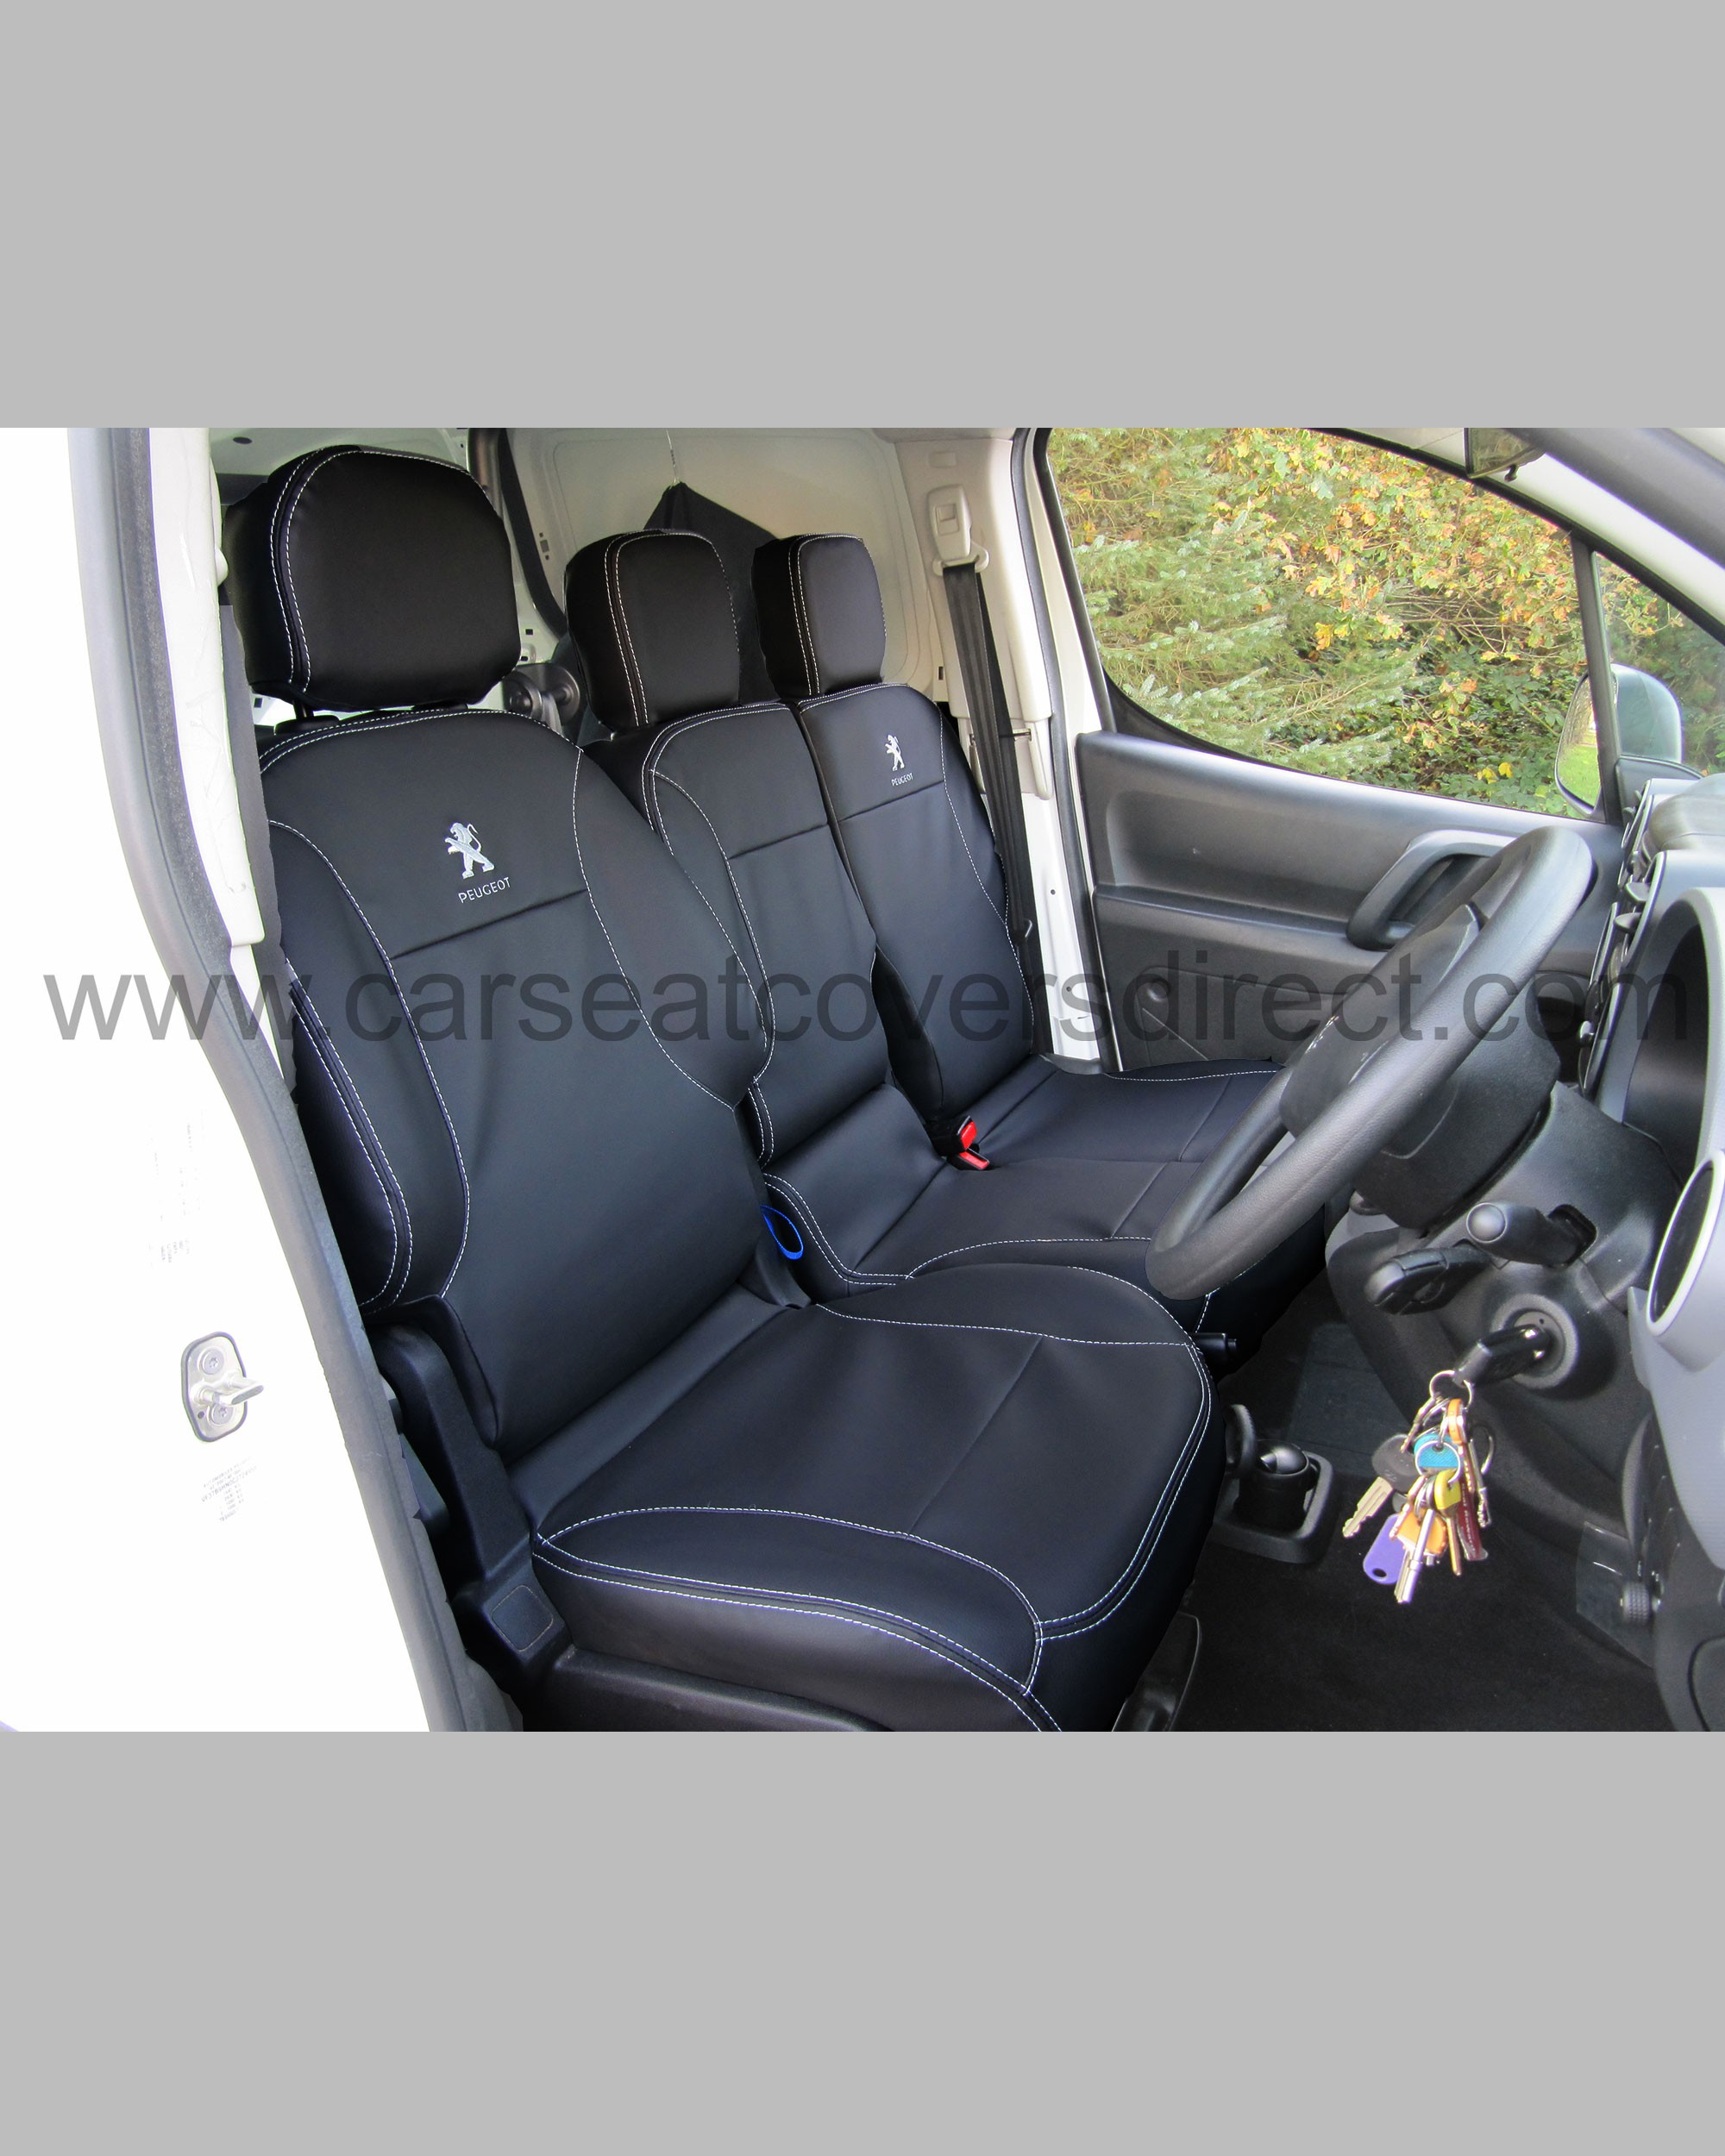 Peugeot Partner Tailored Seat Covers Car Seat Covers